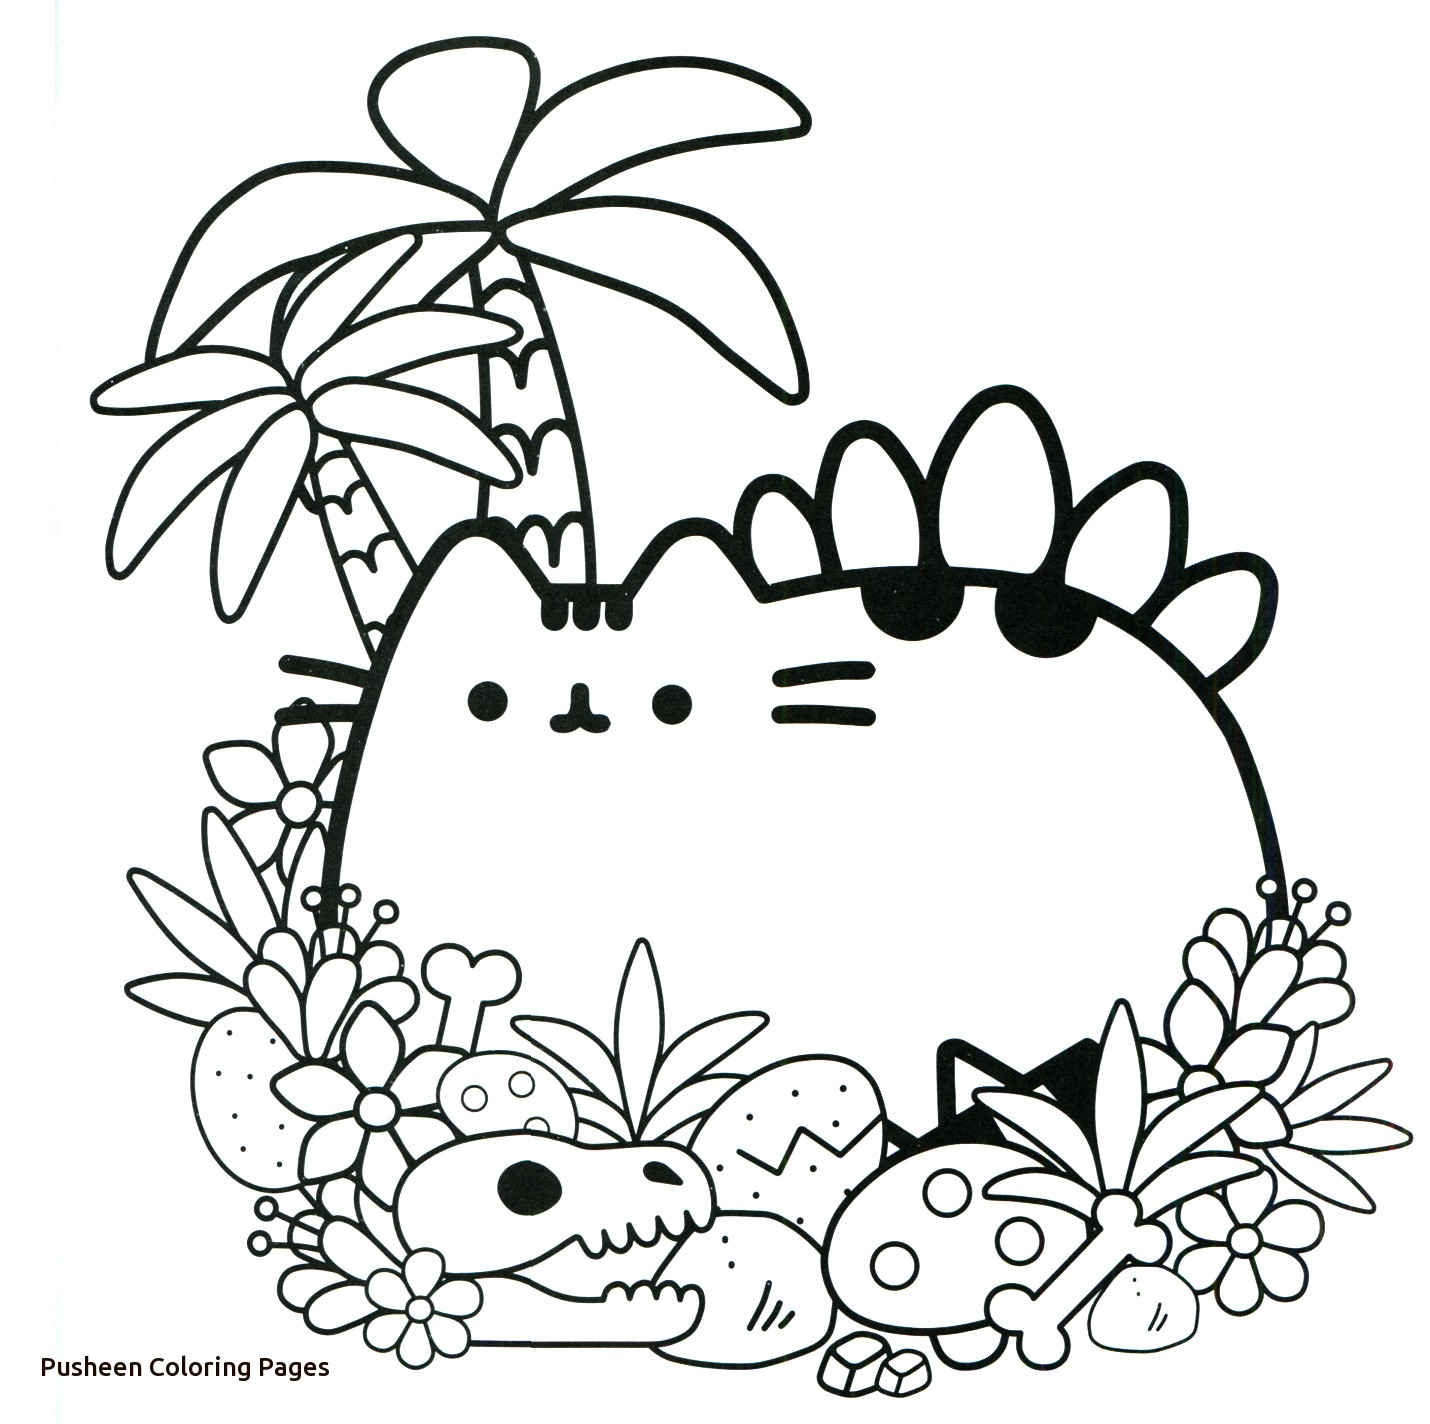 photograph relating to Pusheen Printable named Pusheen Coloring Webpages In the direction of Print at  Free of charge